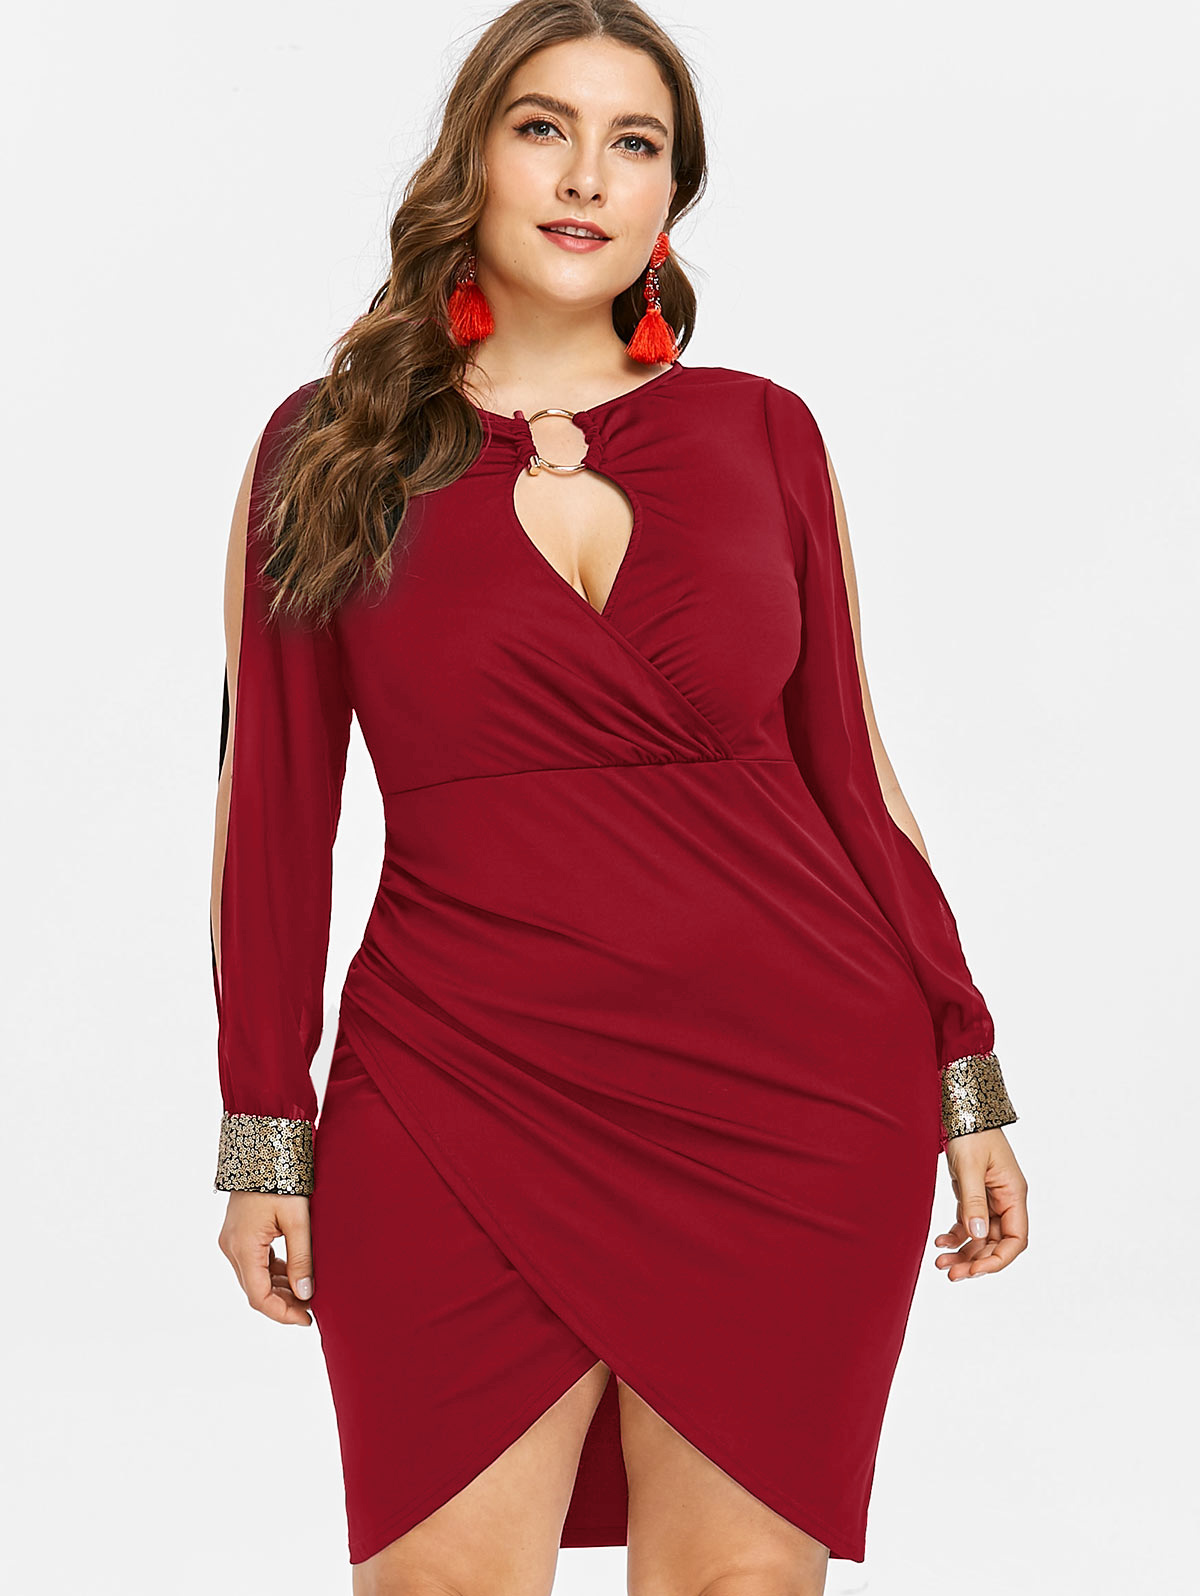 Detail Feedback Questions about Wipalo Slit Sleeve Plus Size O Ring Sequin  Embellished Bodycon Dress Elegant Solid Slip Front Mini Party Dress 5XL Fall  ... 9a5e82446f59